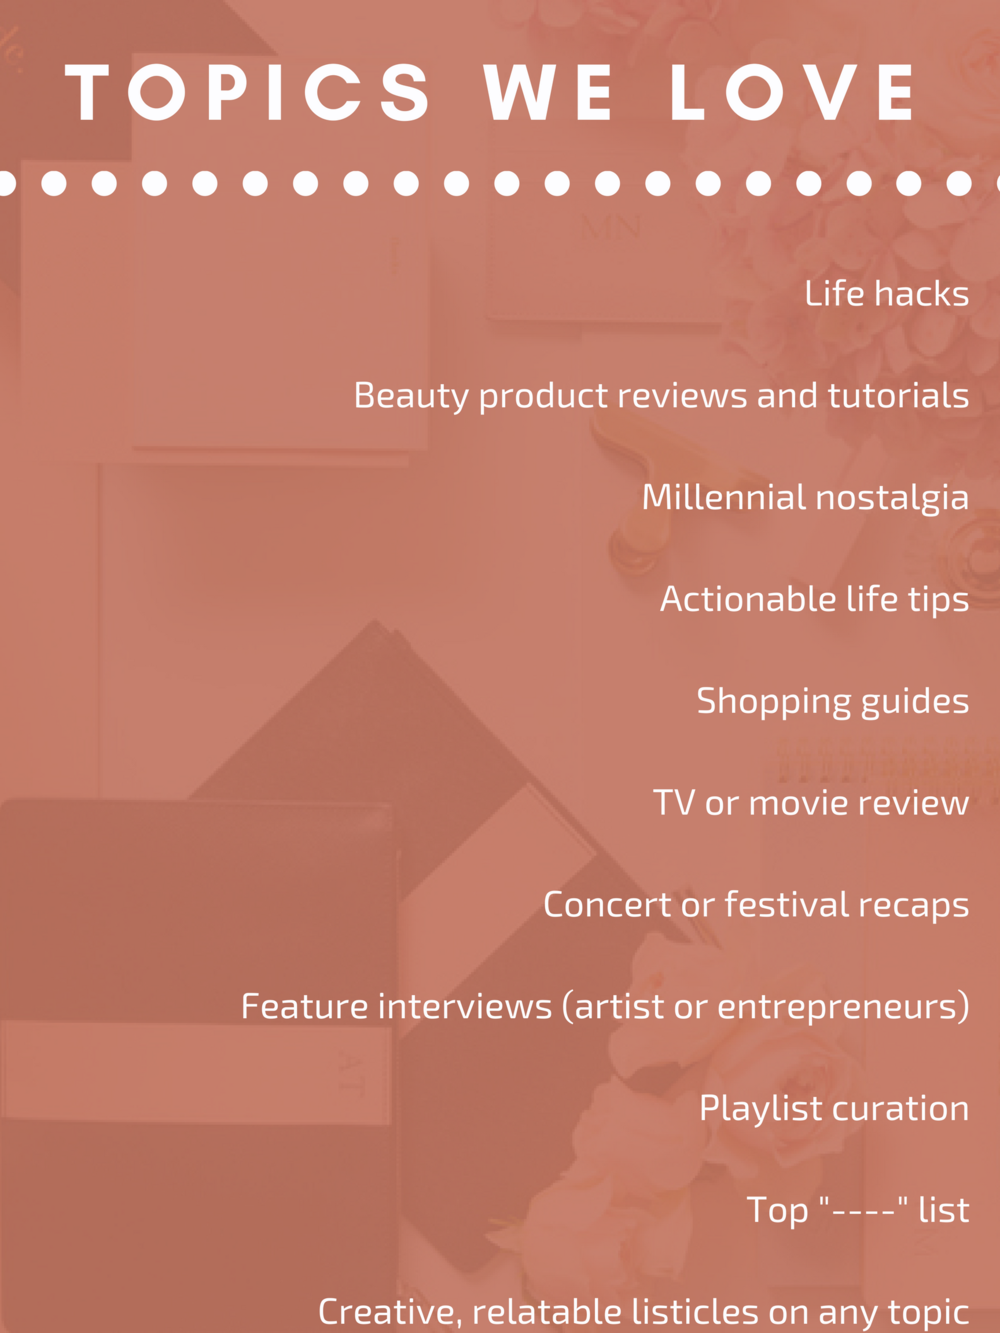 Life hacksBeauty product reviews and tutorialsMillennial nostalgiaActionable life tipsShopping guidesTV or movie reviewConce (3).png